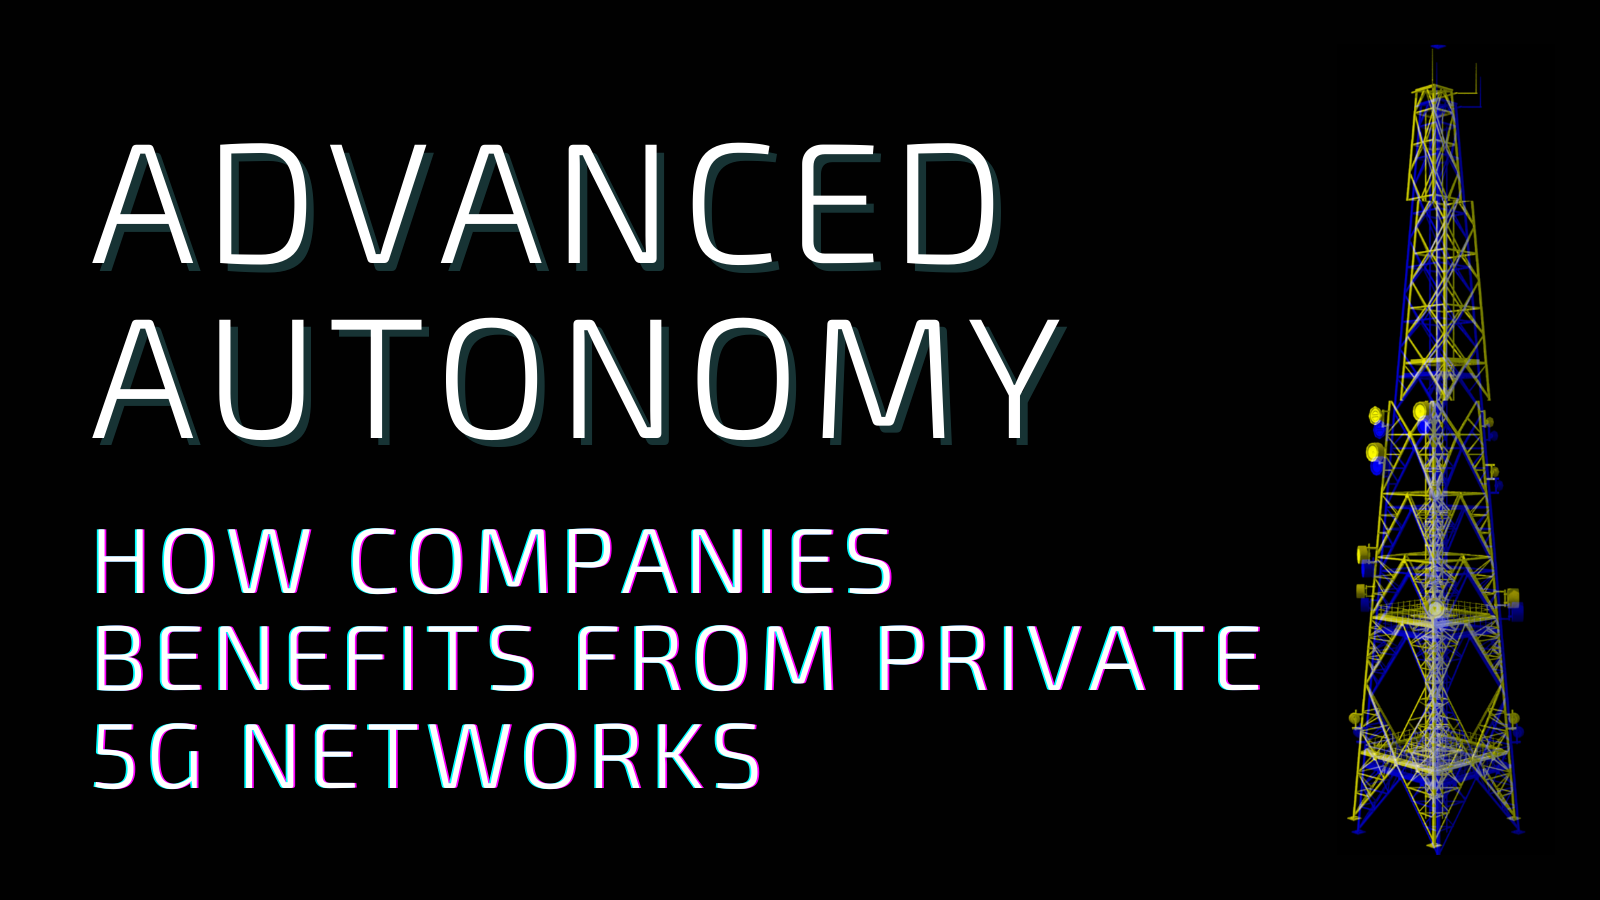 How Companies Benefit from Private 5G Networks